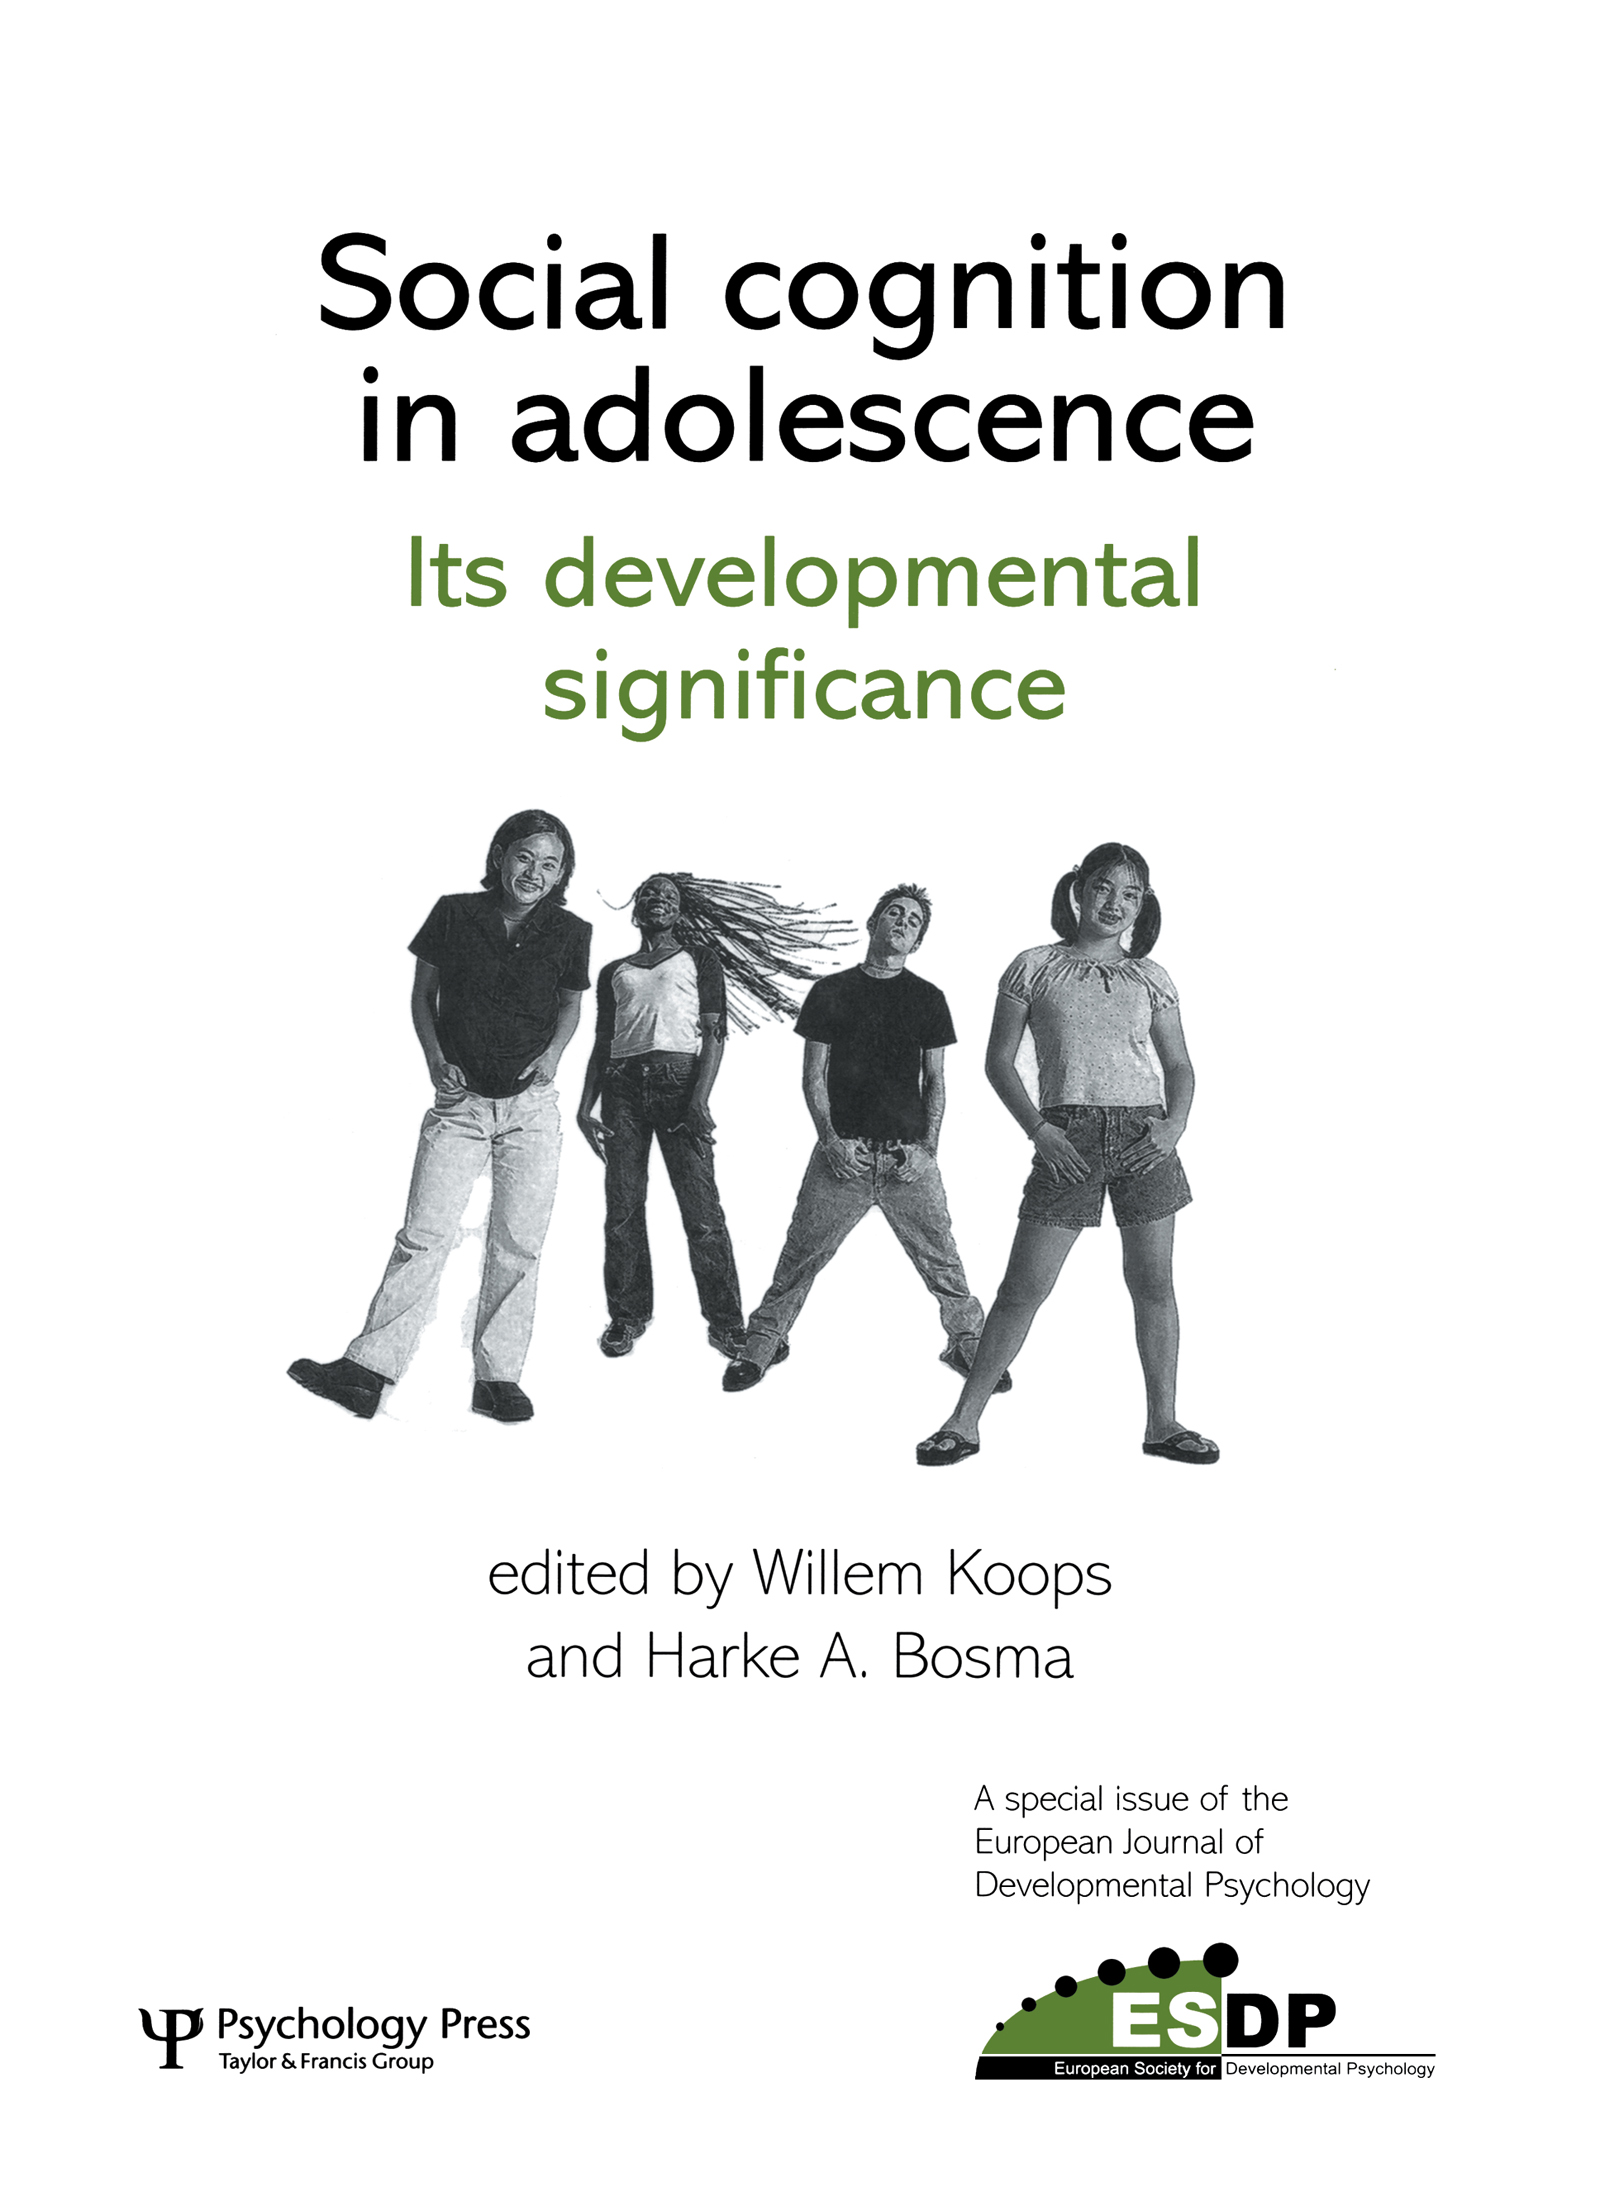 Social Cognition in Adolescence: Its Developmental Significance: A Special Issue of the European Journal of Developmental Psychology book cover